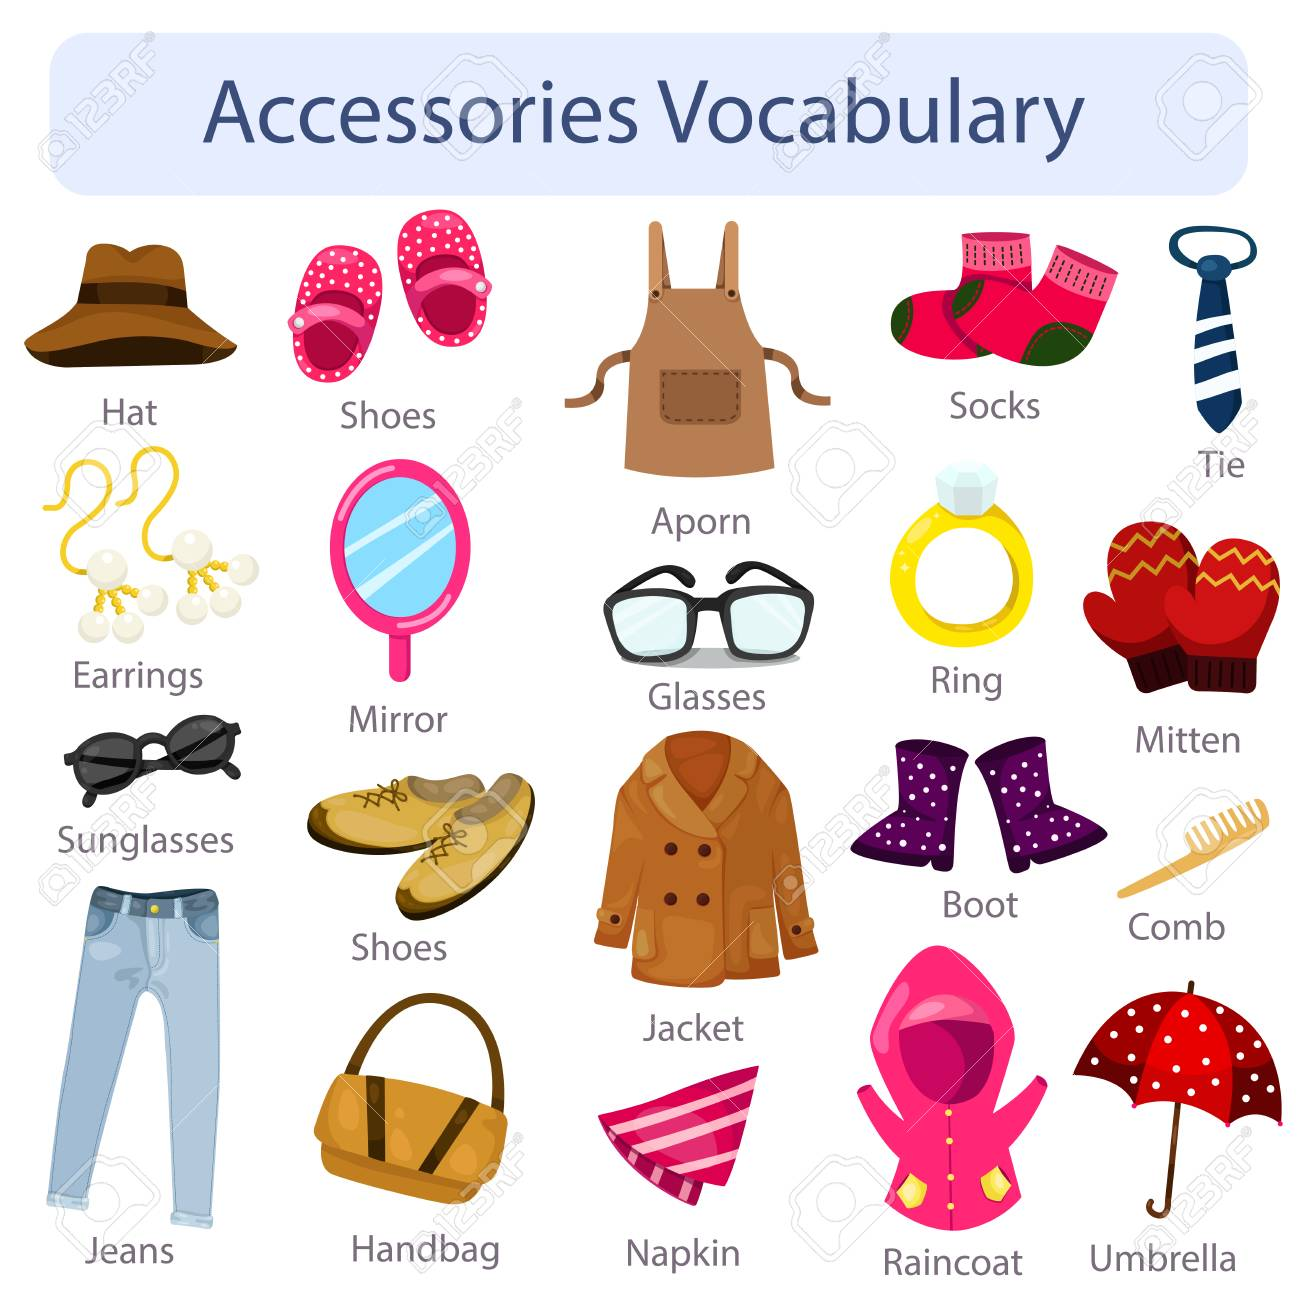 General Introduction Vocabulary Review Accessories Tomi Digital